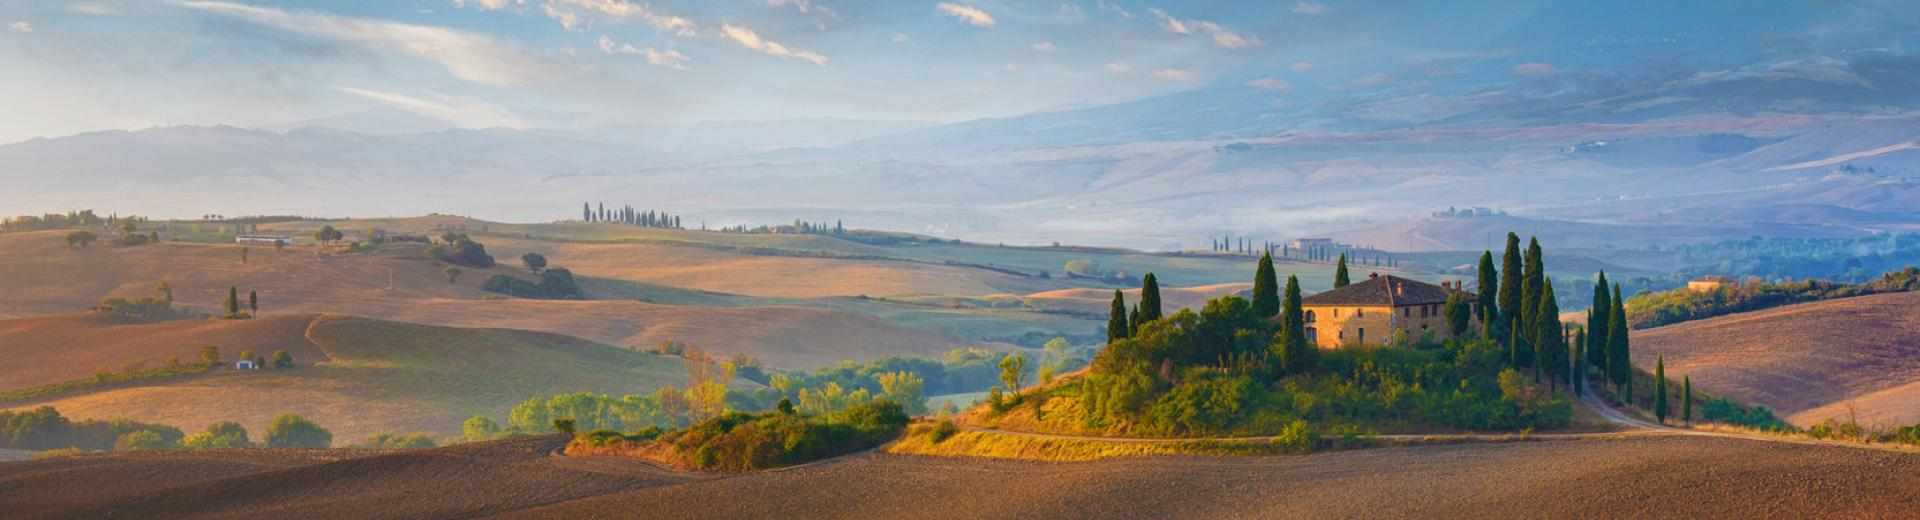 Tuscany feature